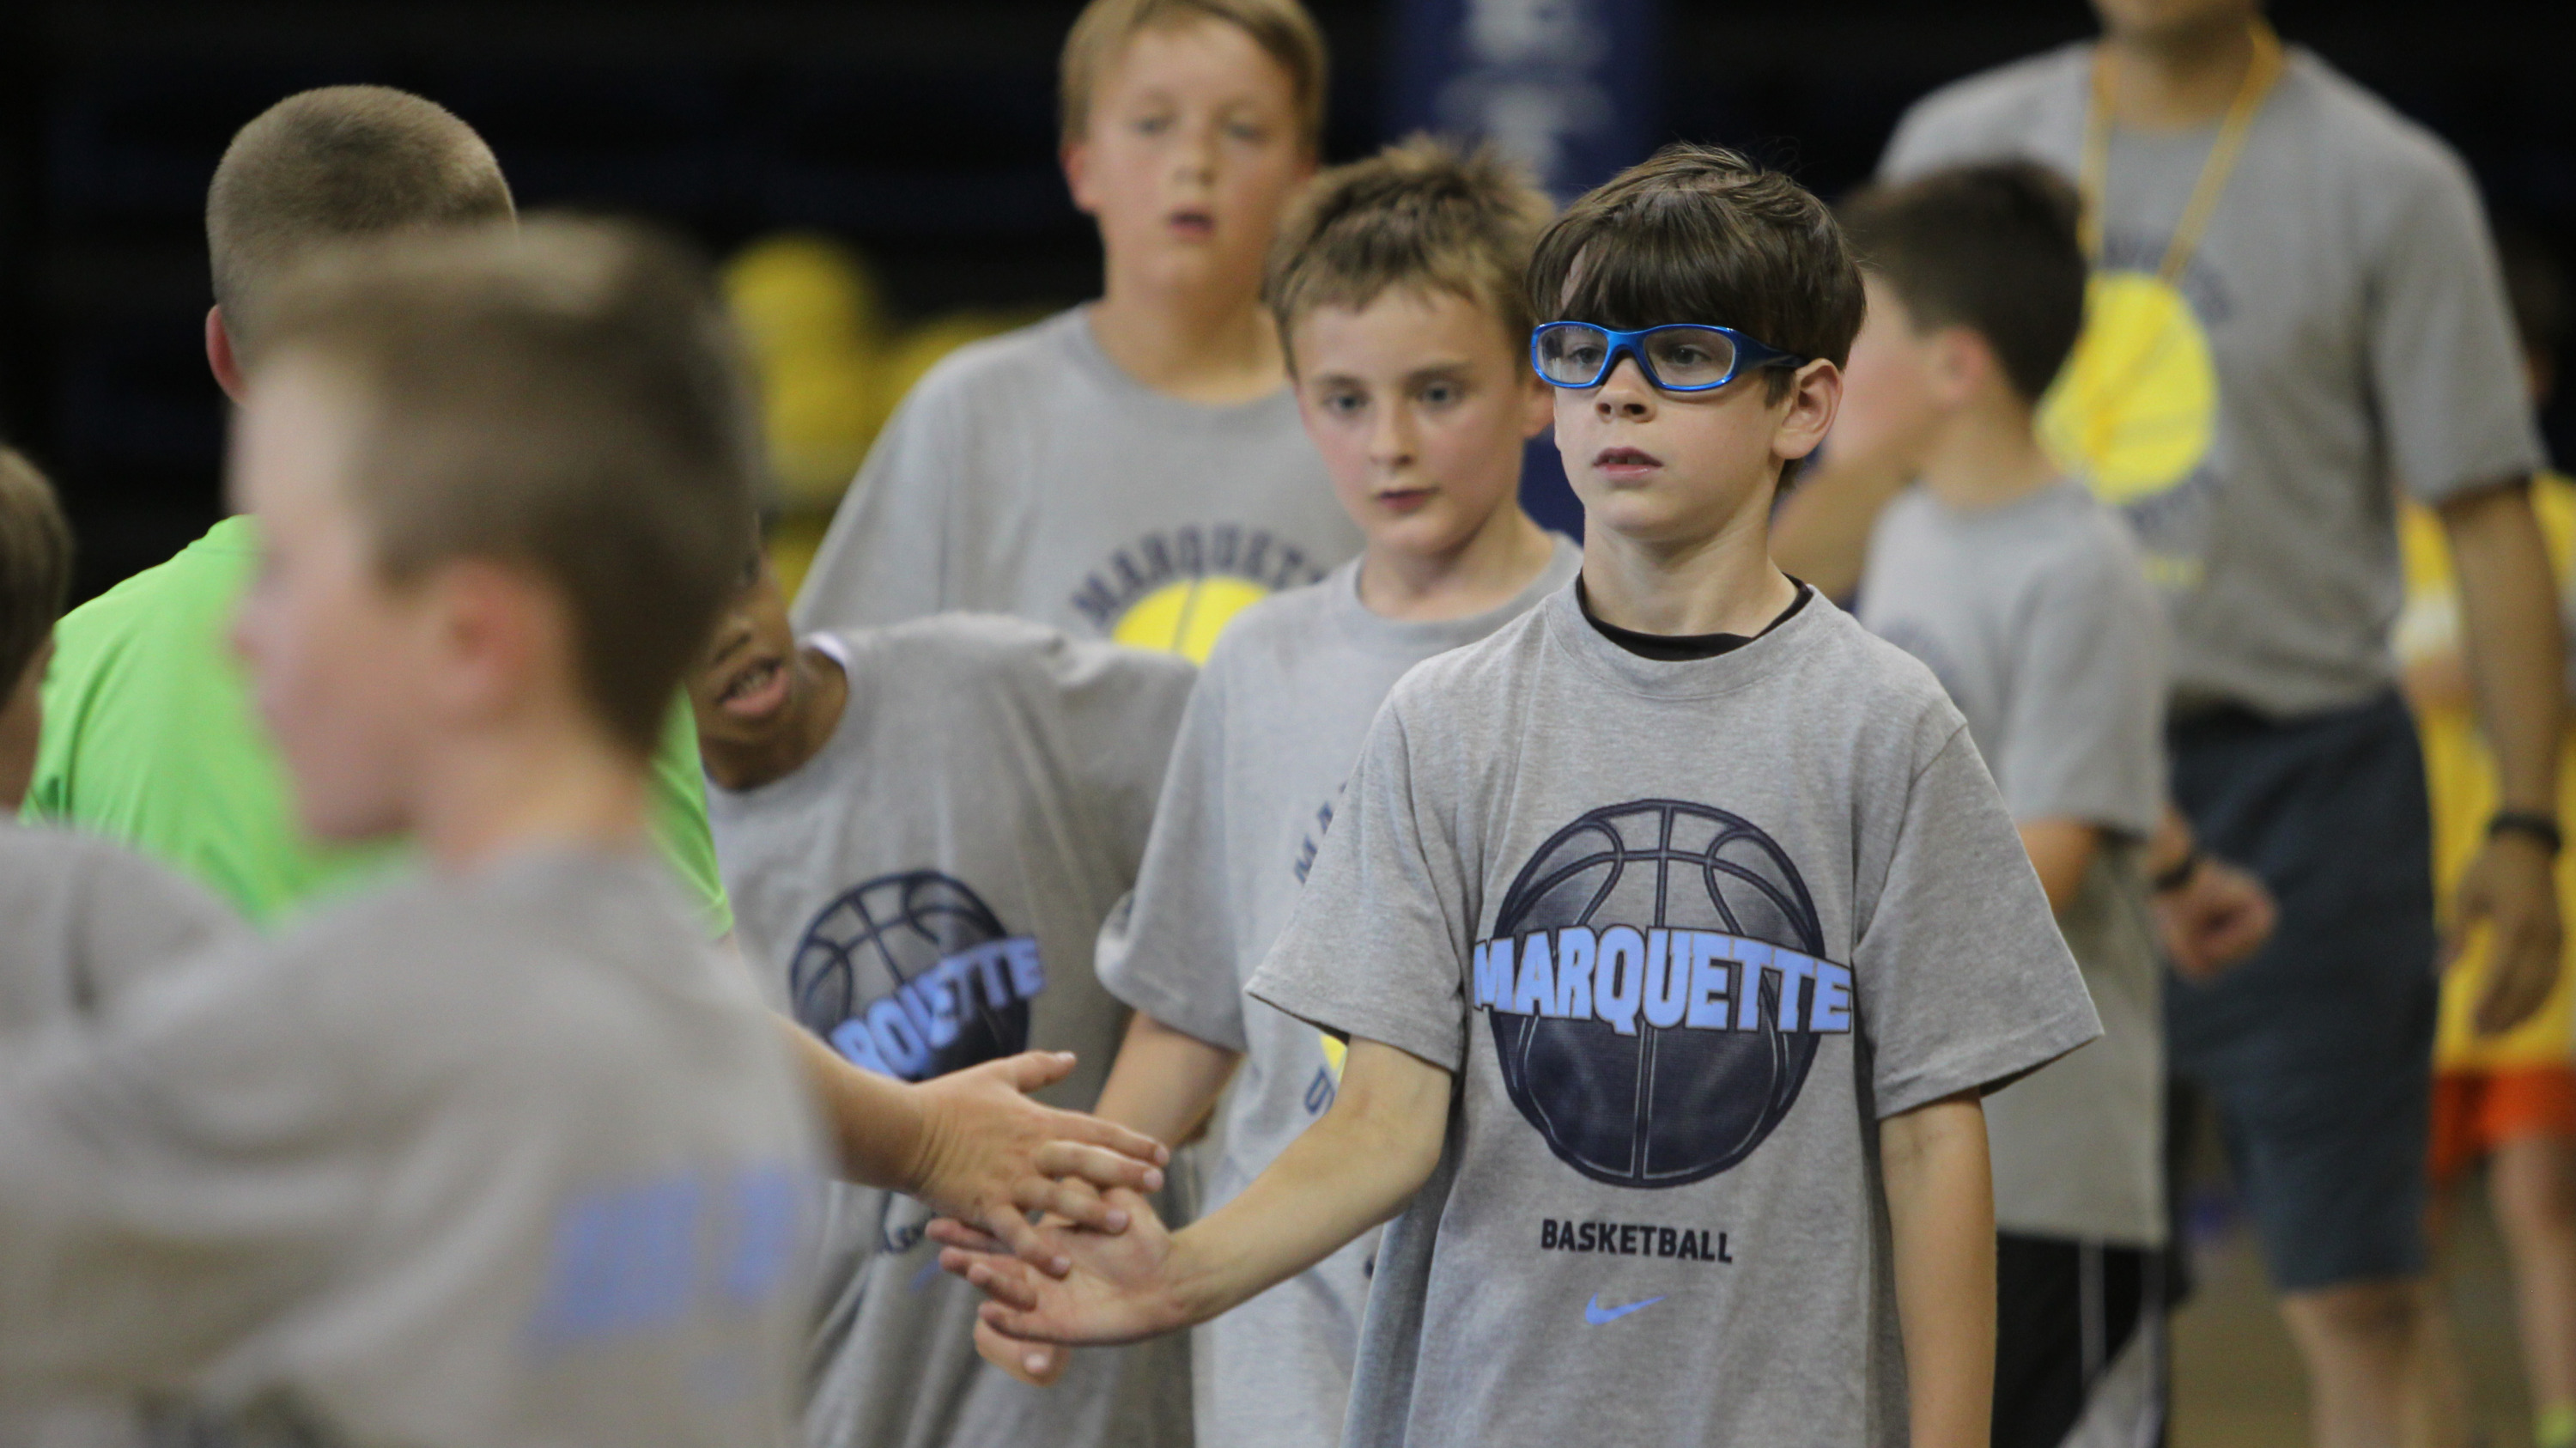 Hundreds of campers will participate in the three week-long sessions.